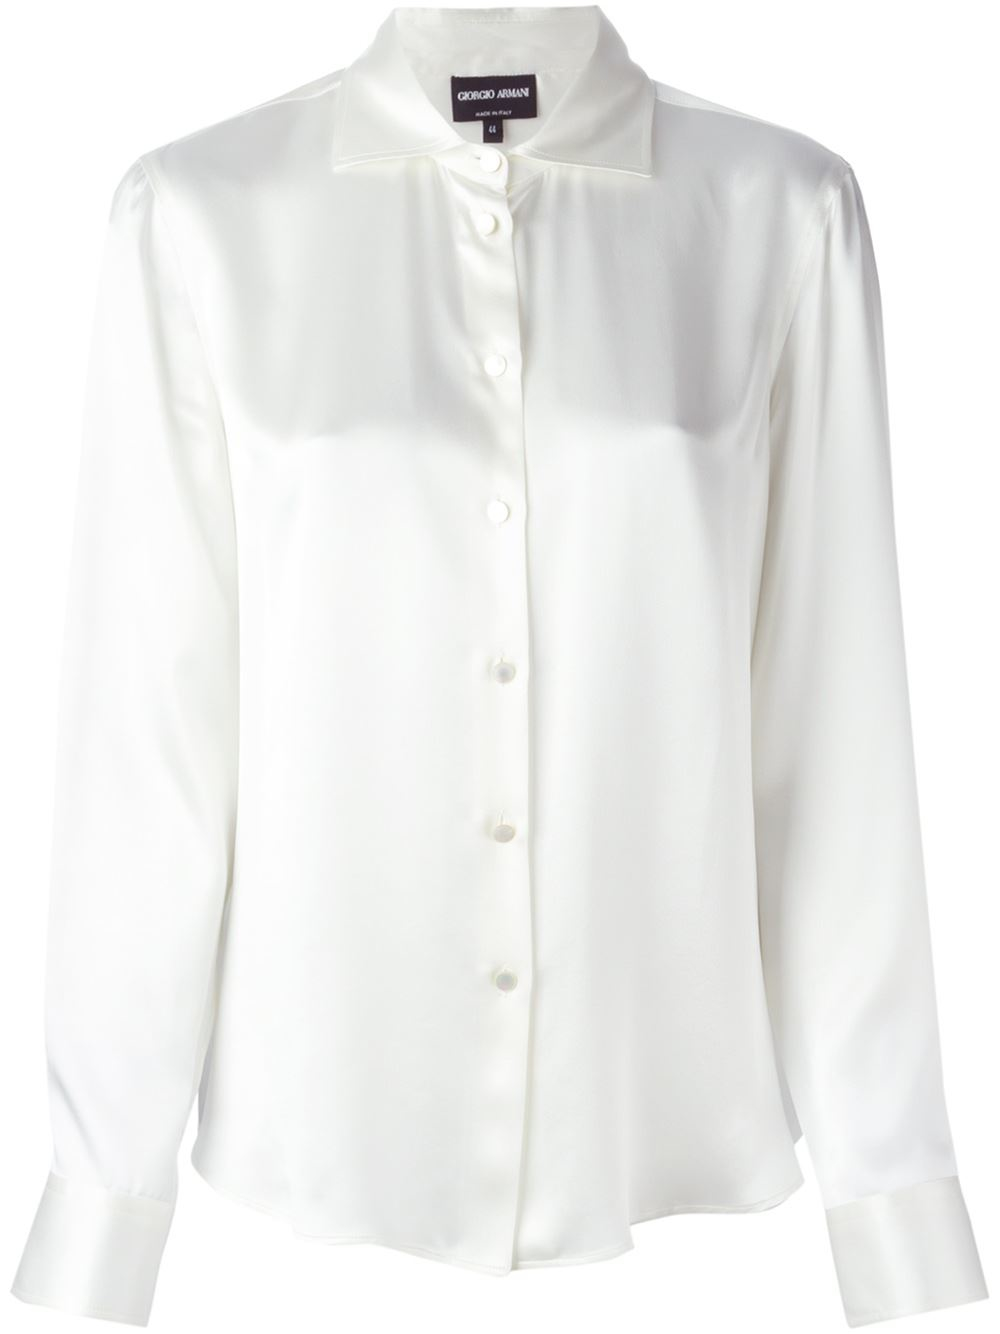 Giorgio armani spread collar shirt in white lyst for What is a spread collar shirt